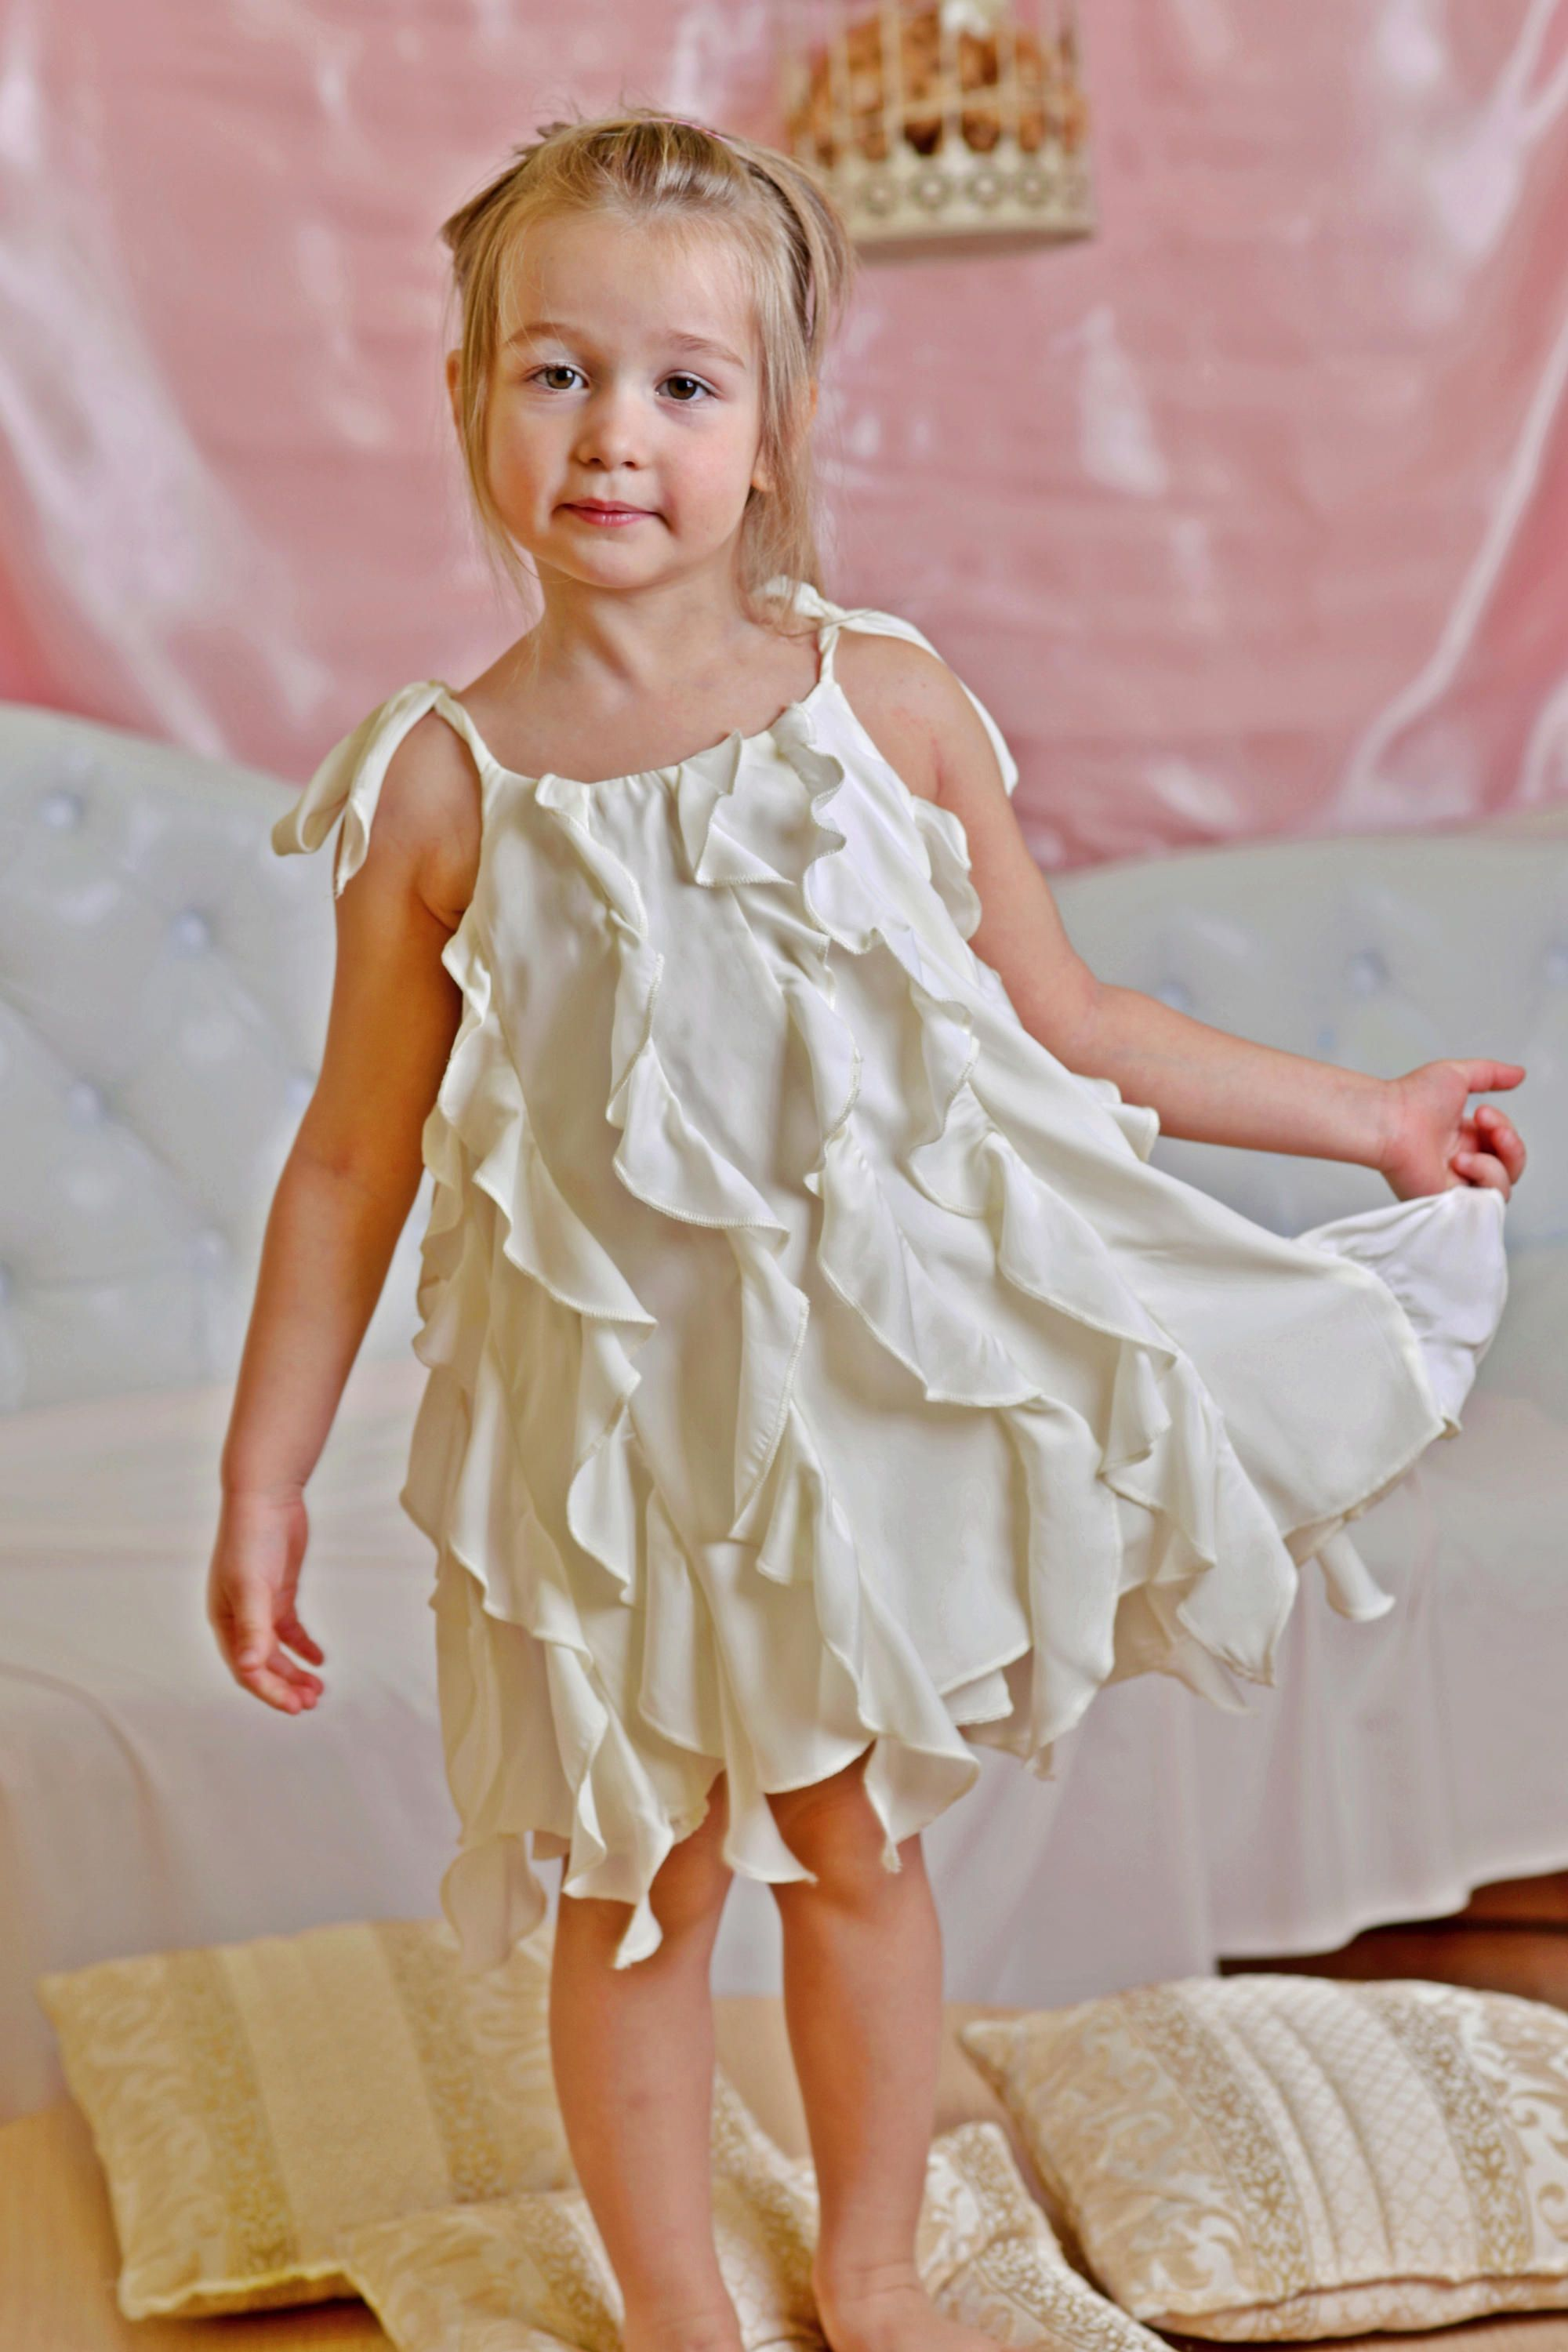 Ruffle dress wedding  White maid of honor dresses for a wedding Bridesmaid gown ruffle